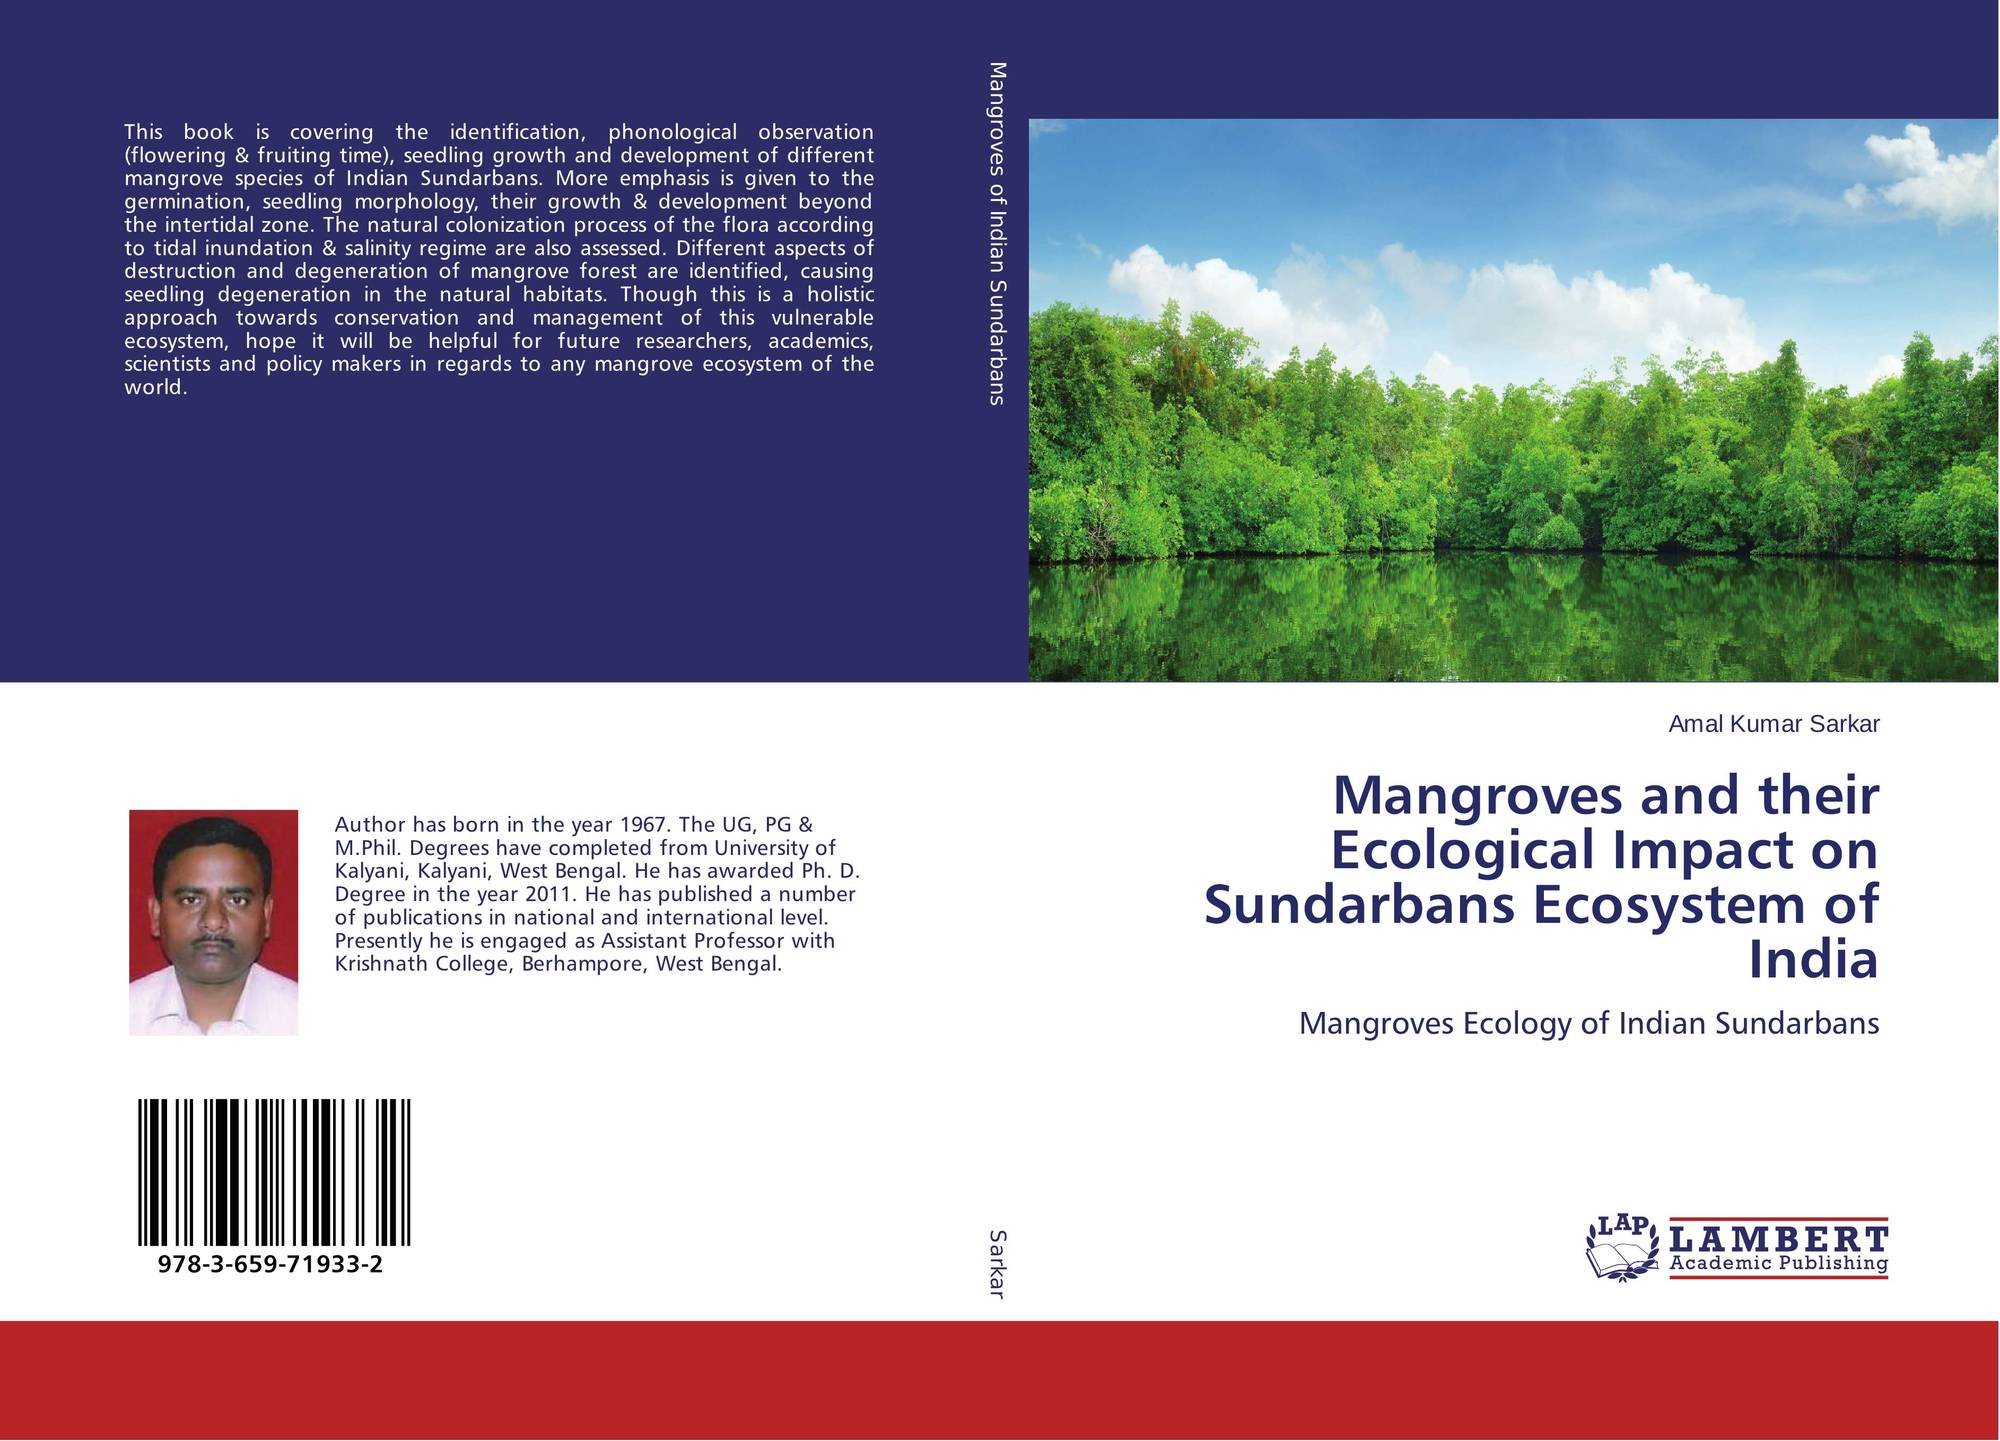 """mangrove thesis As required under the university ordinance 0198 (vi), i state that the present thesis entitled """"environmental studies on mangrove cover changes in goa, and its resident crassostrea population"""" is my original contribution and the same has not been submitted on any previous occasion for the best of my knowledge, the."""